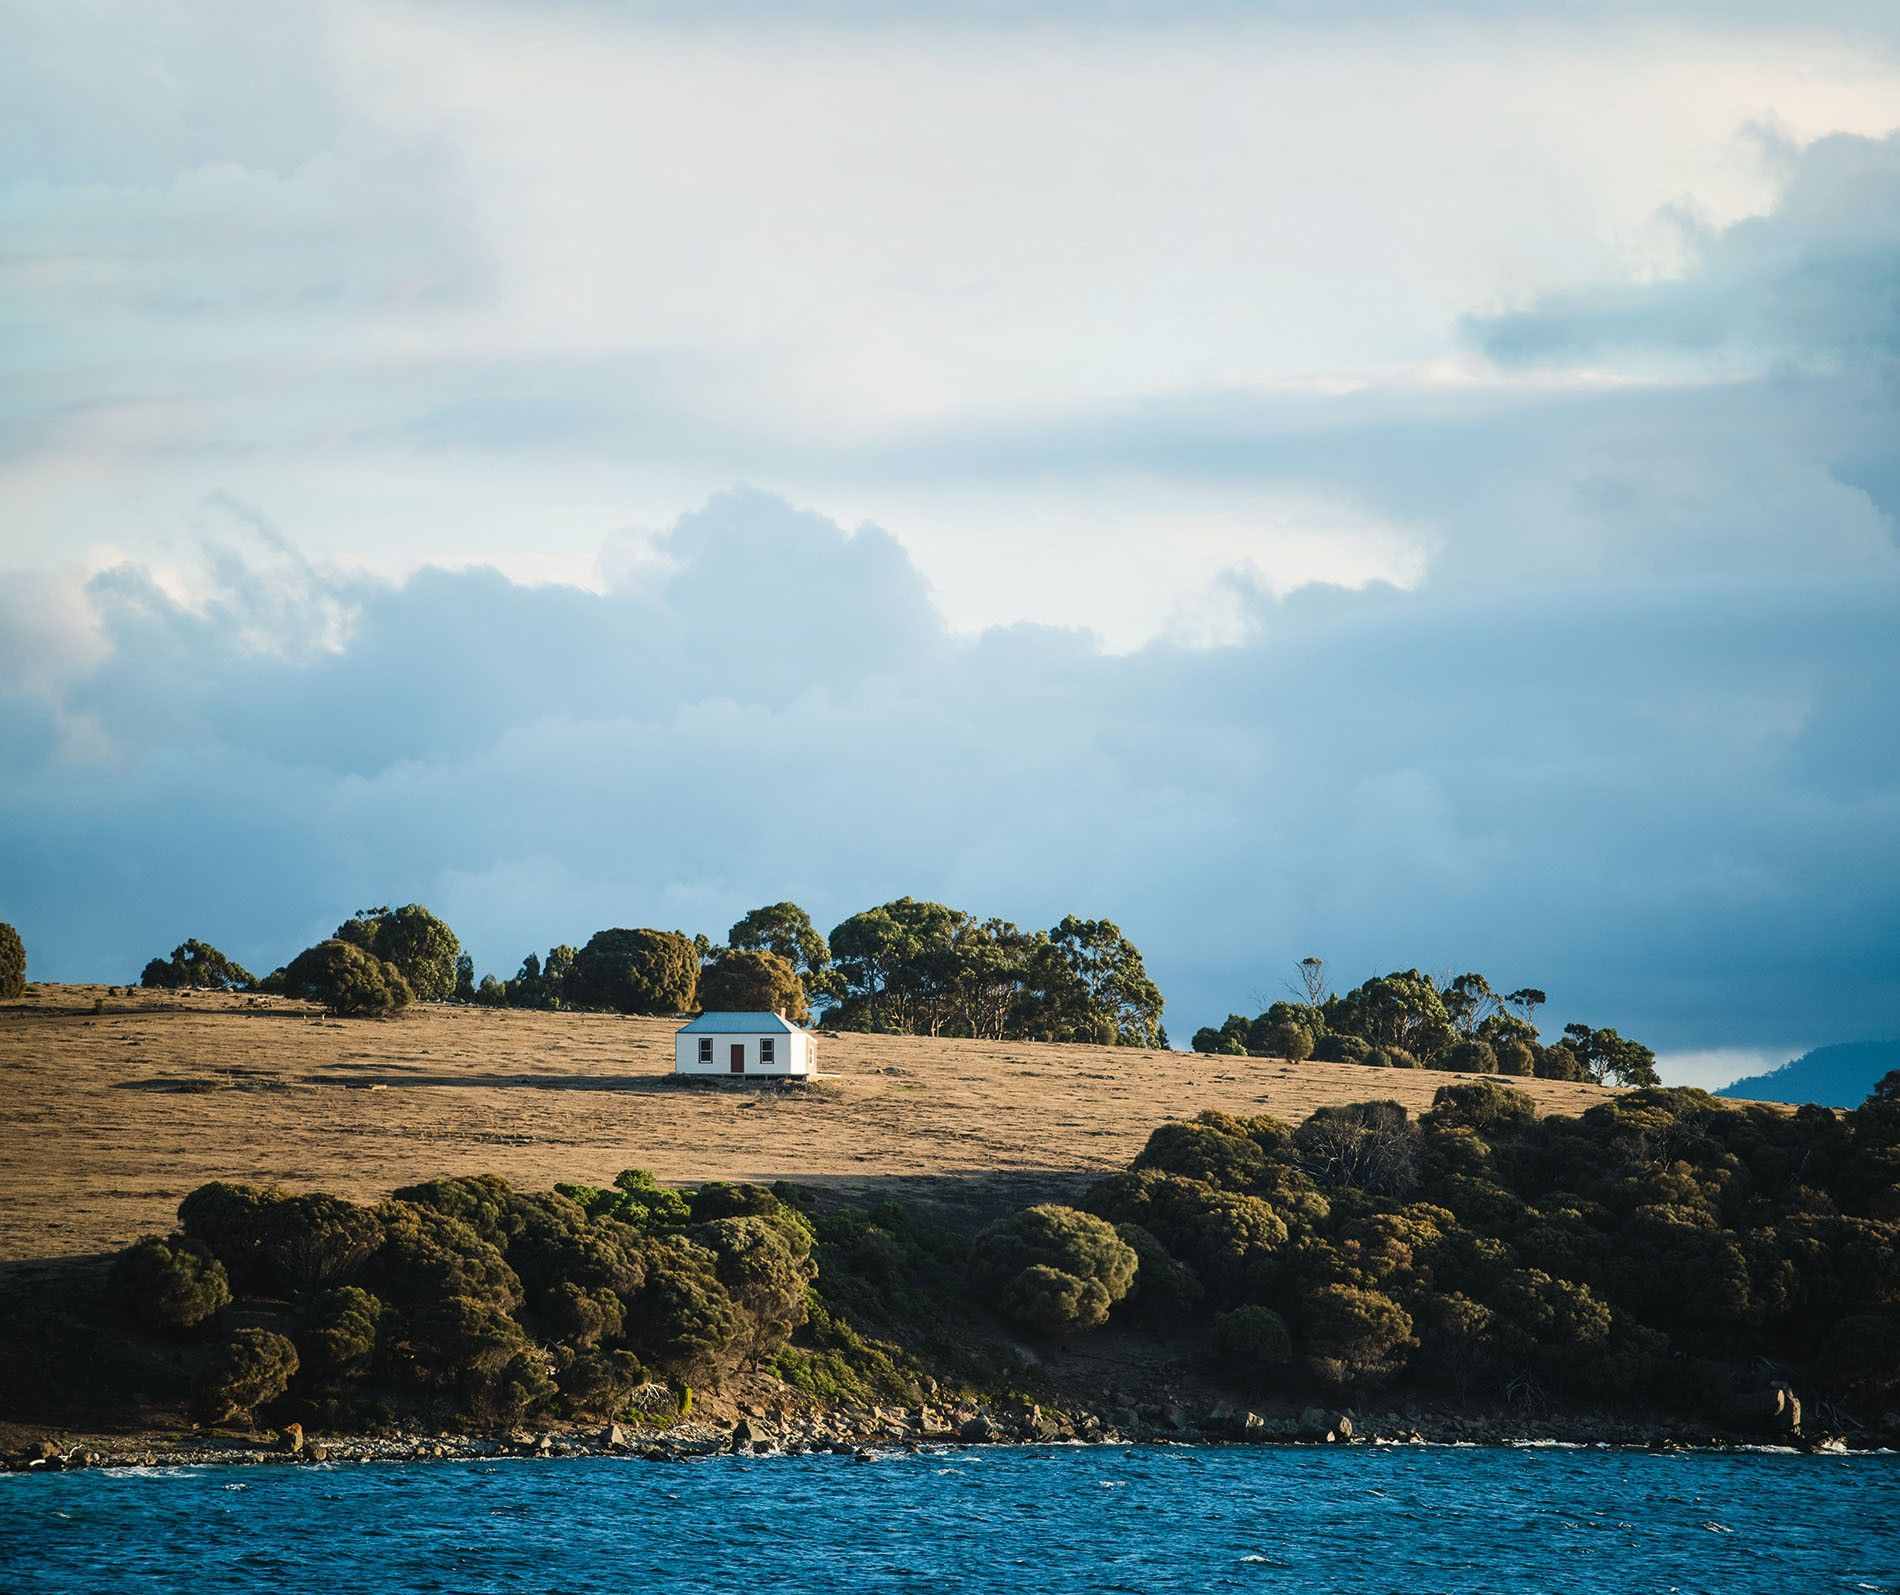 Mrs Hunt's Cottage, Maria Island. Located in the Tasman Sea, Maria Island is a 30-minute ferry ride from Triabunna on the east coast of Tasmania.